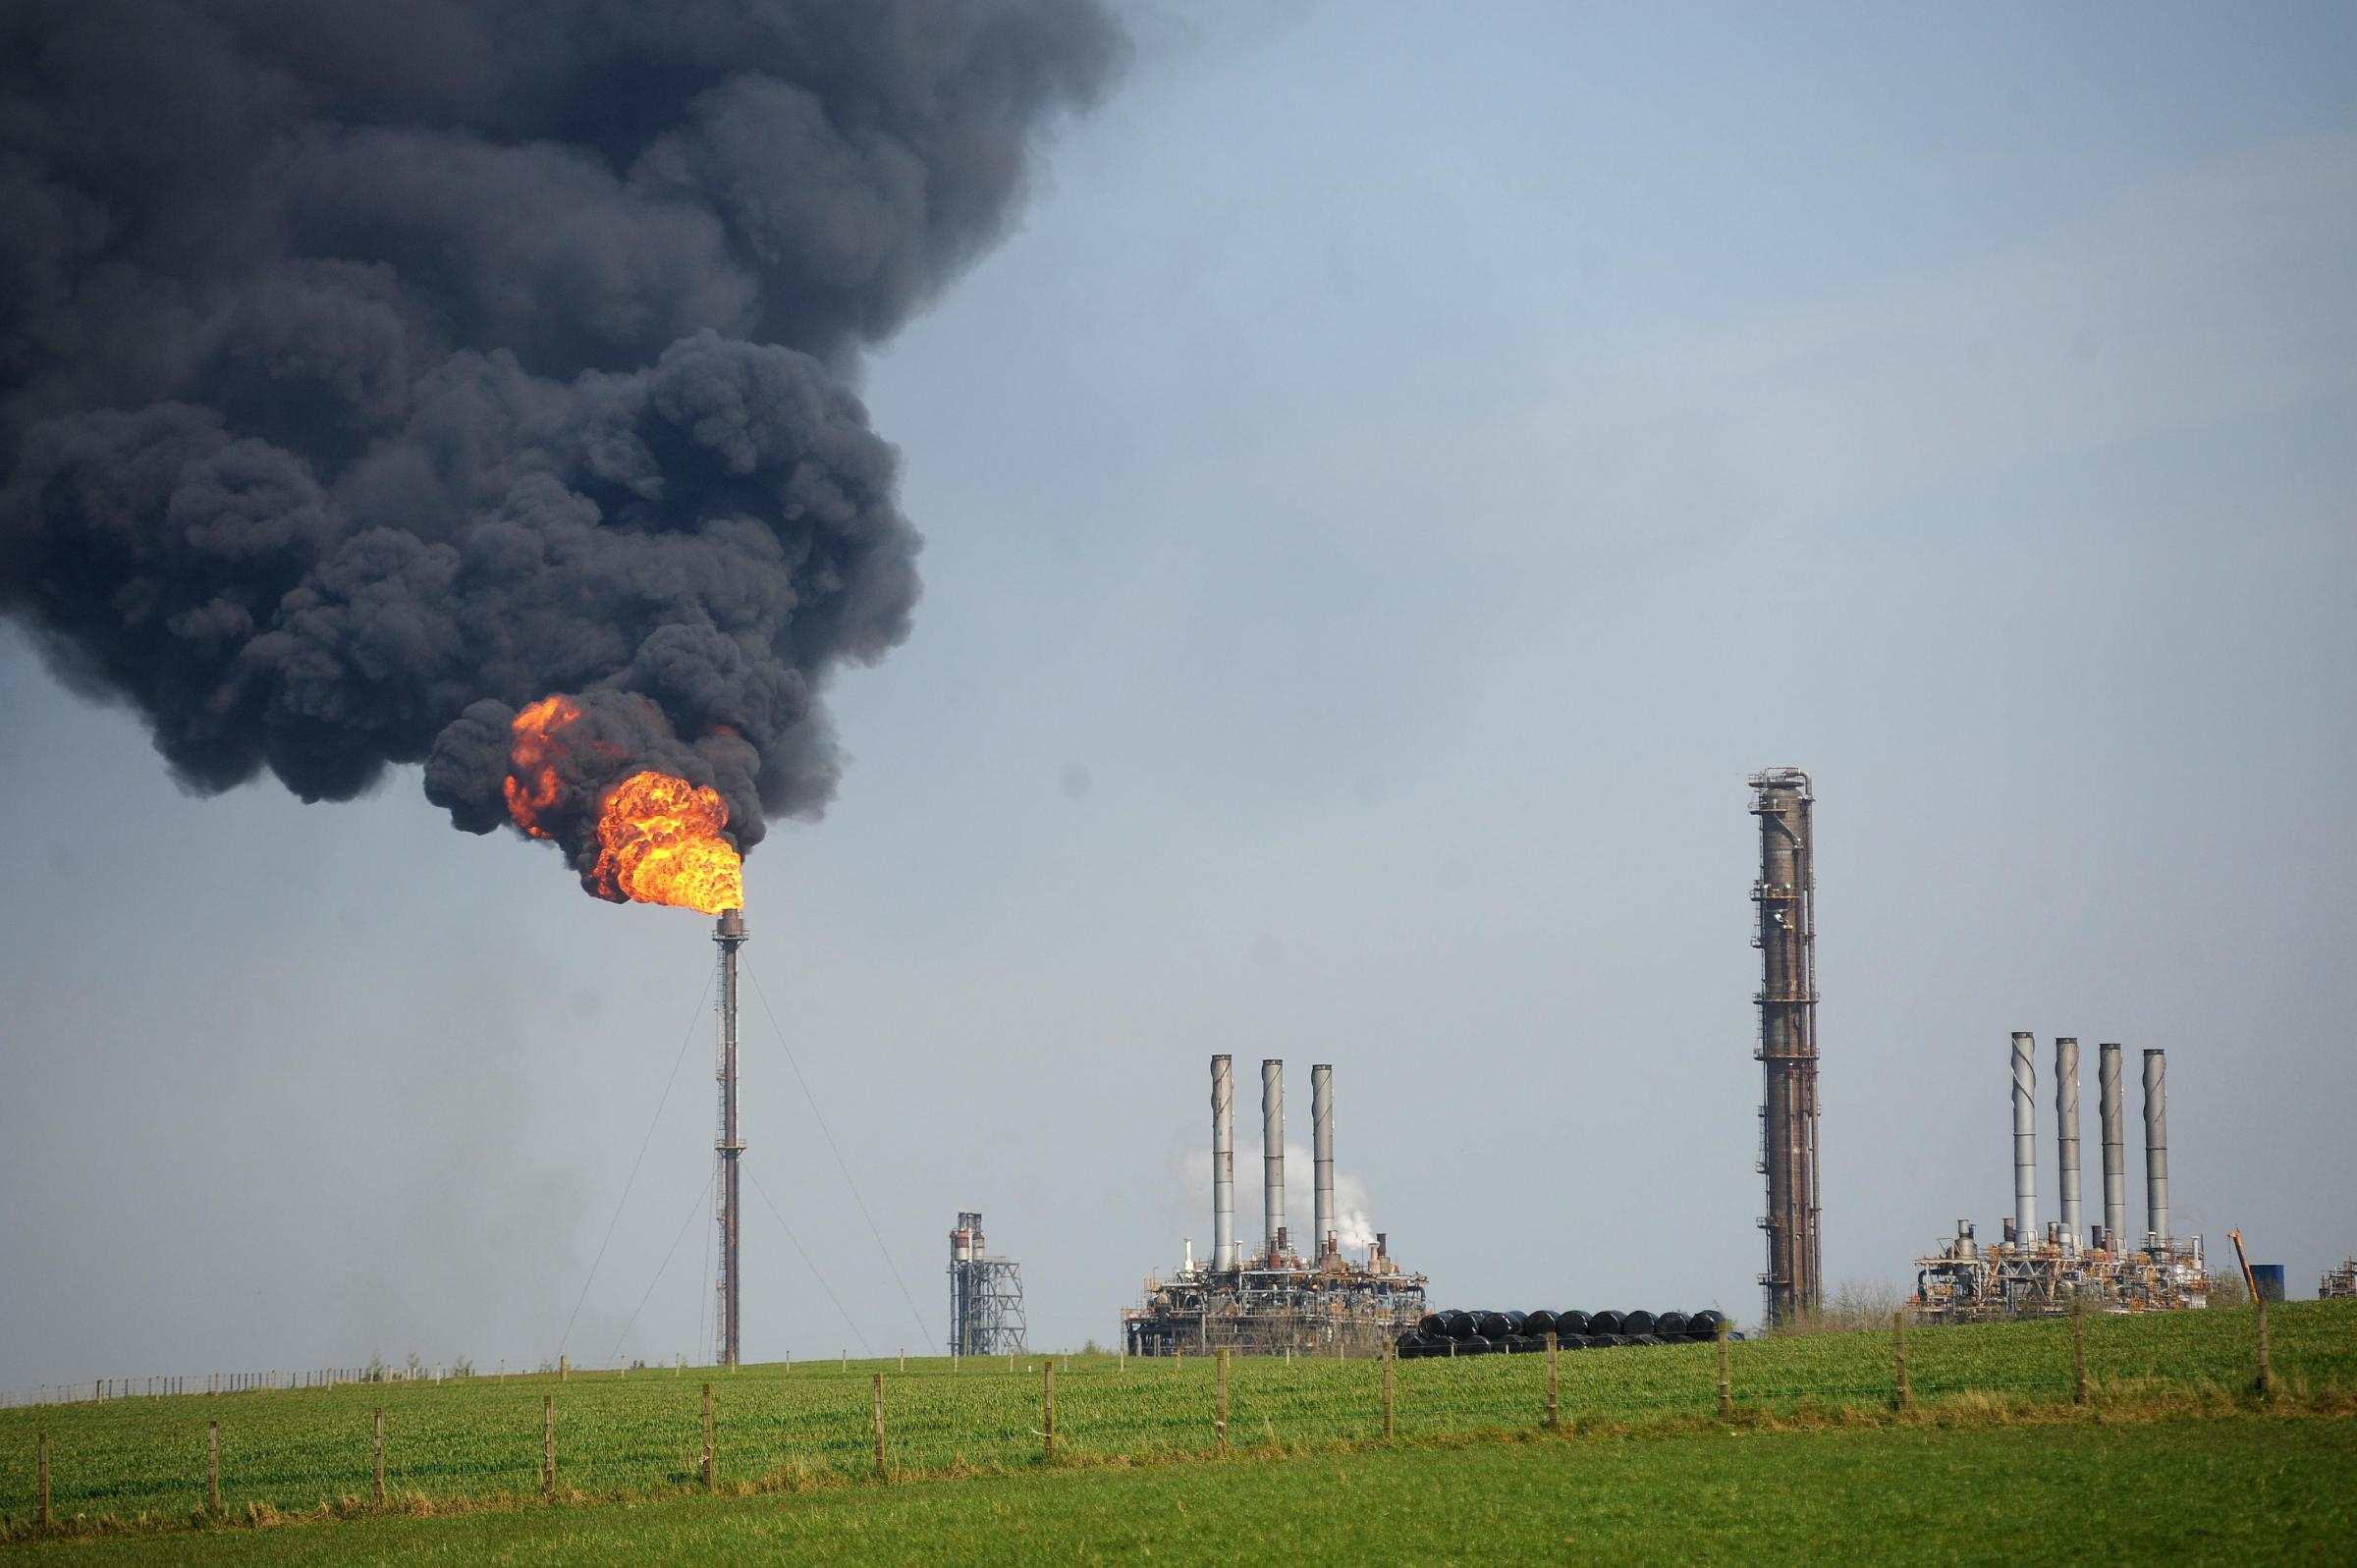 Mossmorran flaring: Nicola Sturgeon to consider inquiry into chemical plant